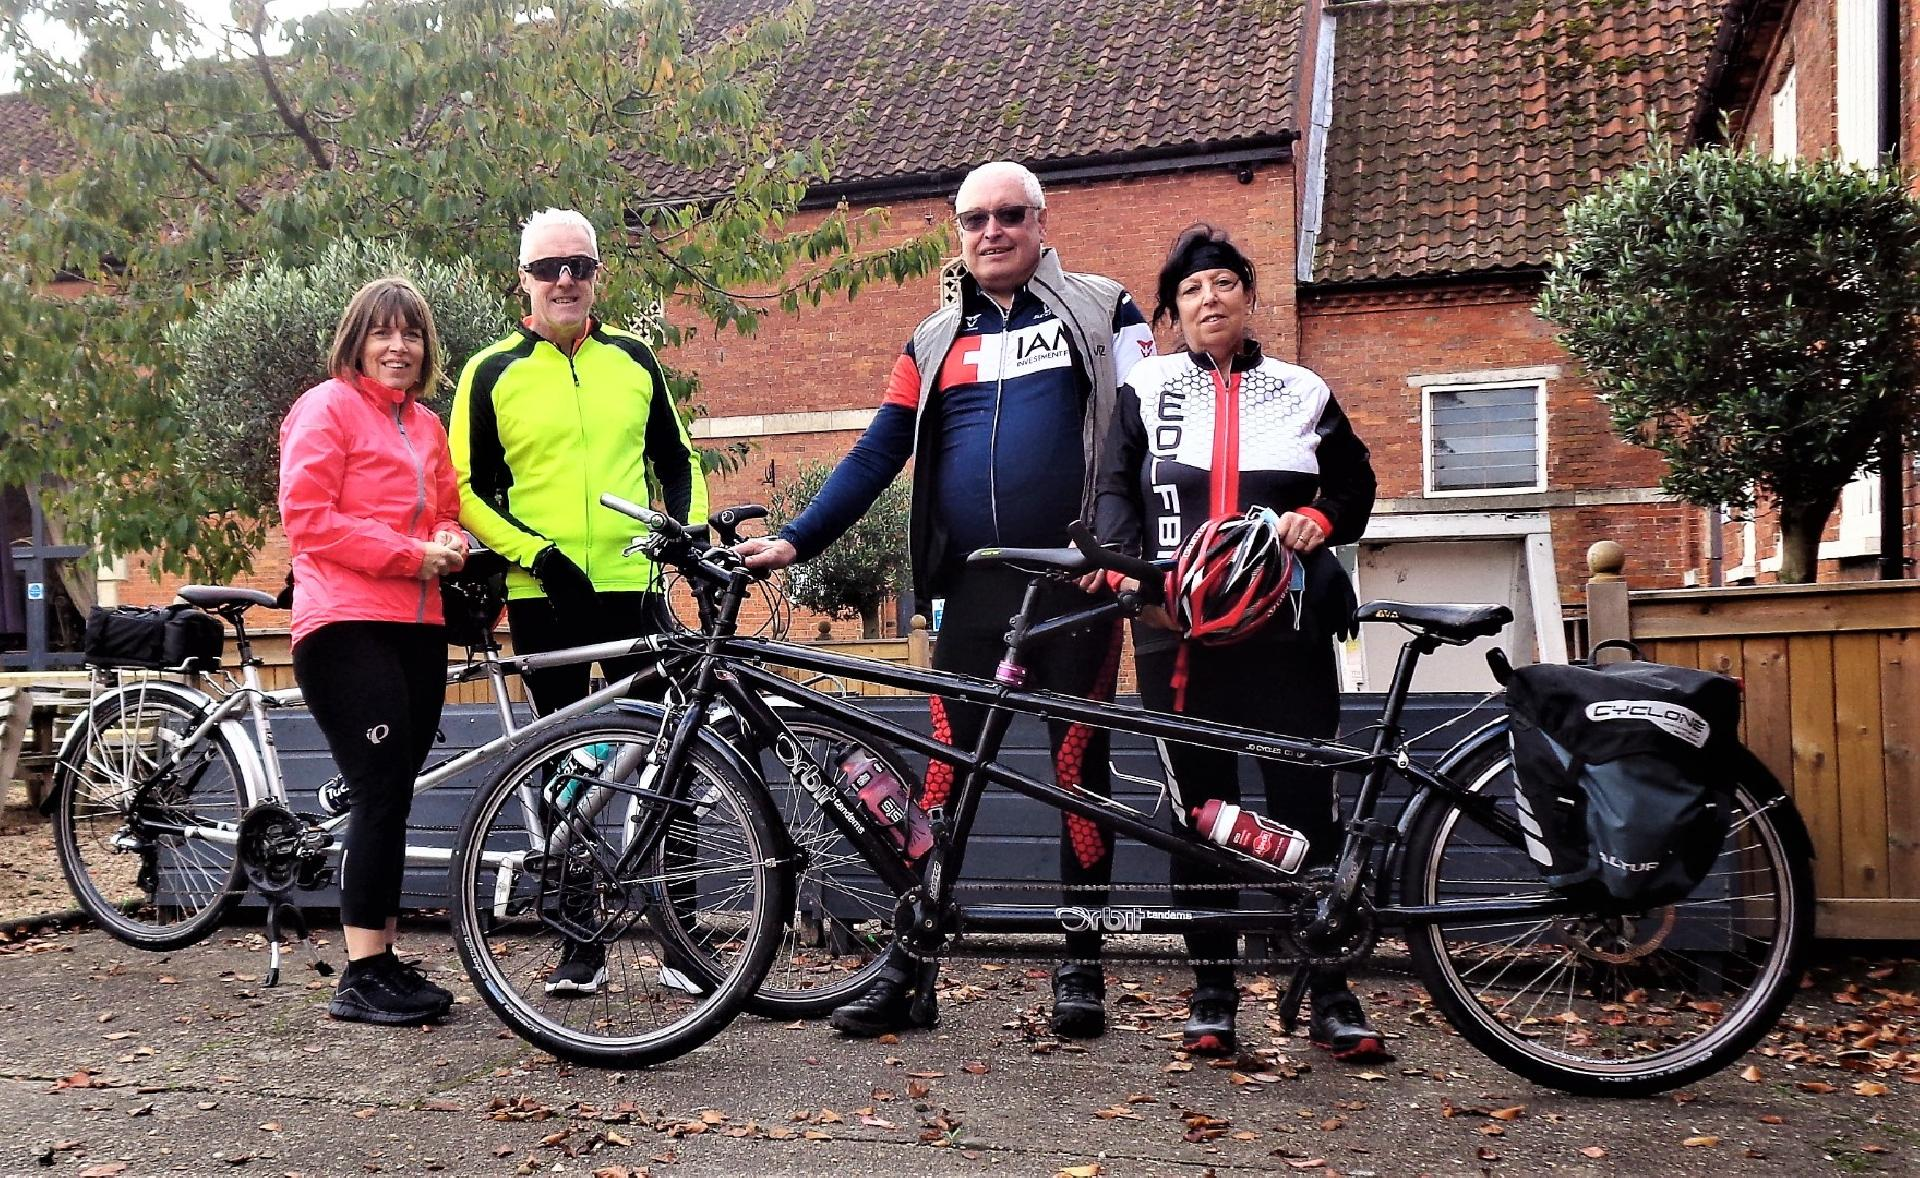 The Inaugural Ride of the Humberside region, stop for a coffee at Elsham Hall